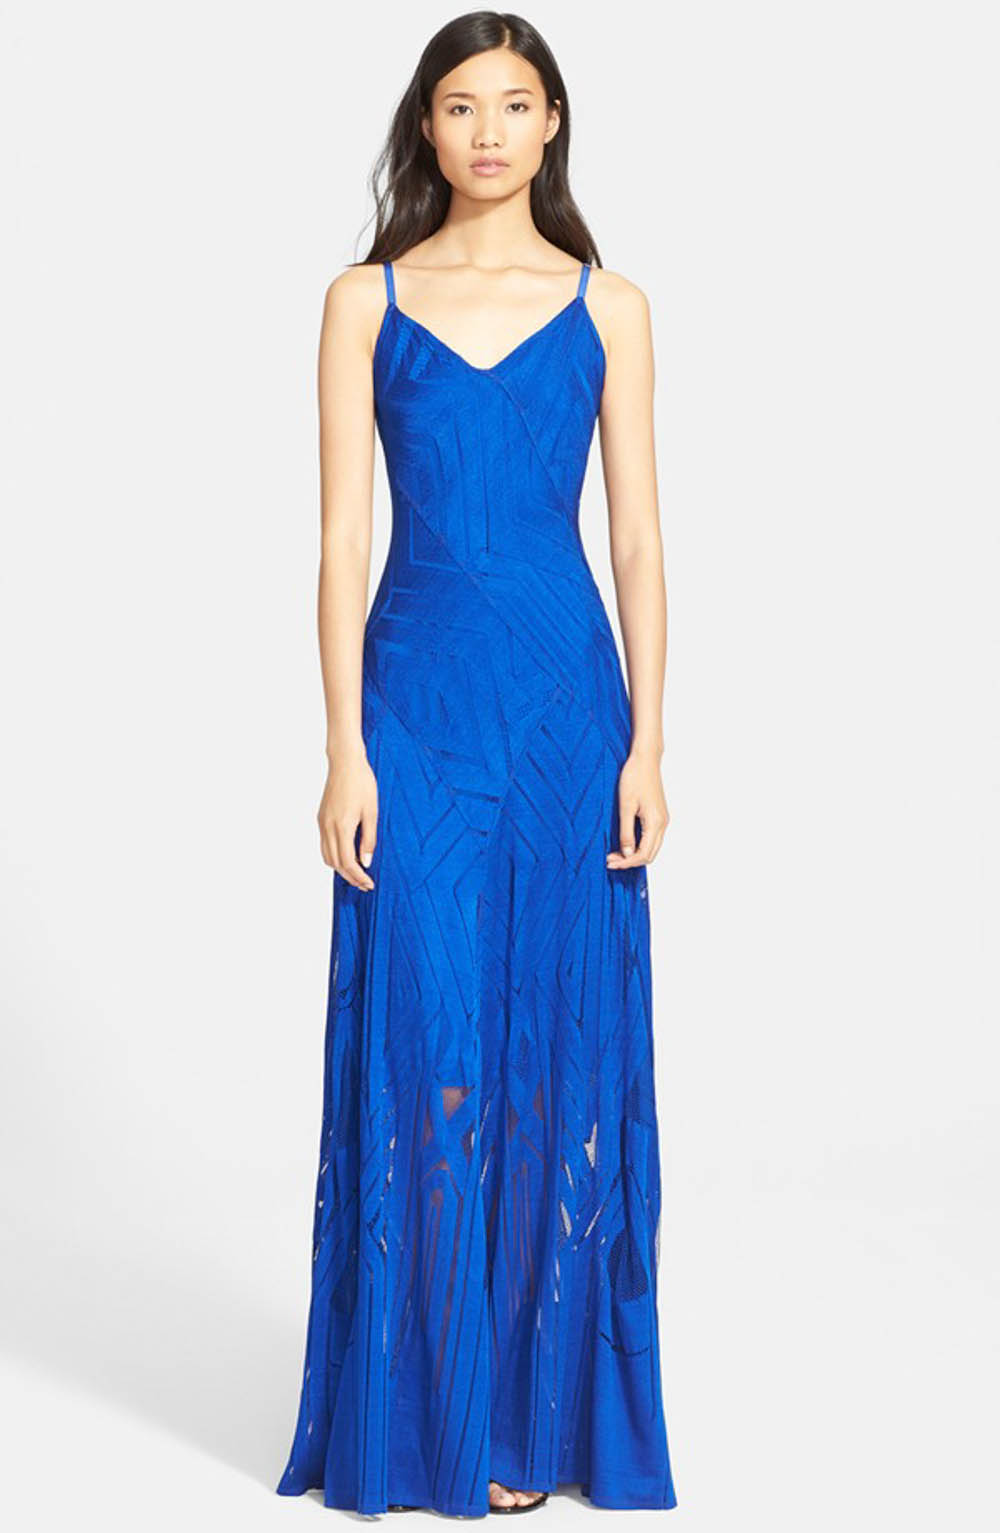 Blue bridesmaid dress _ Tracy reese